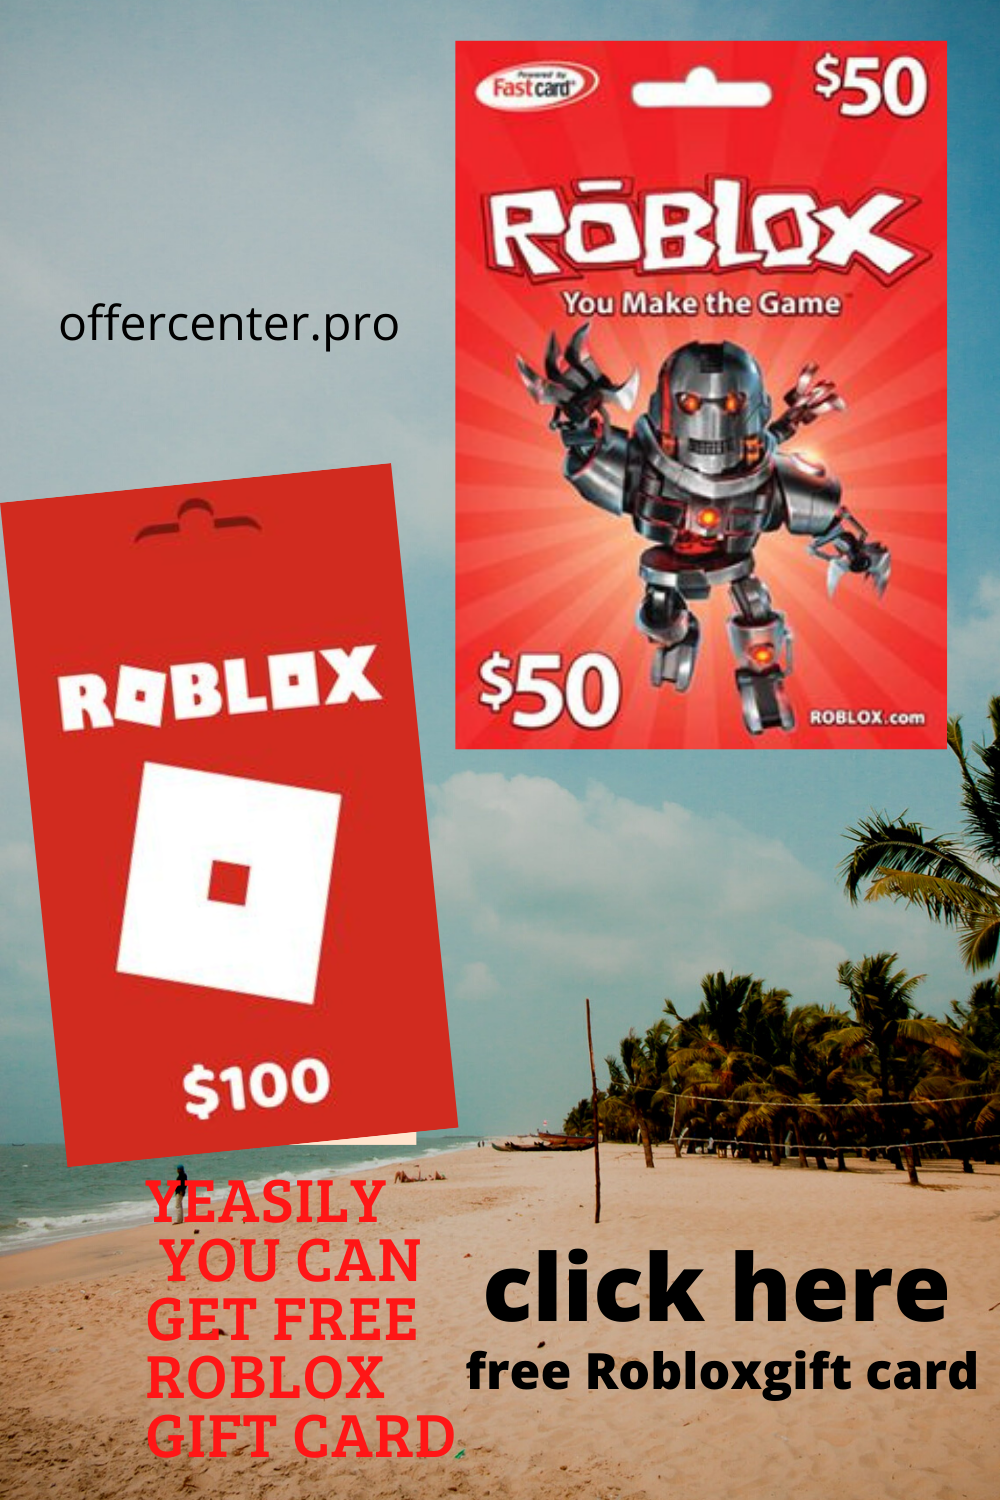 How To Get Free Robux Code In 2020 Amazon Gift Card Free Roblox Gifts Gift Card Giveaway